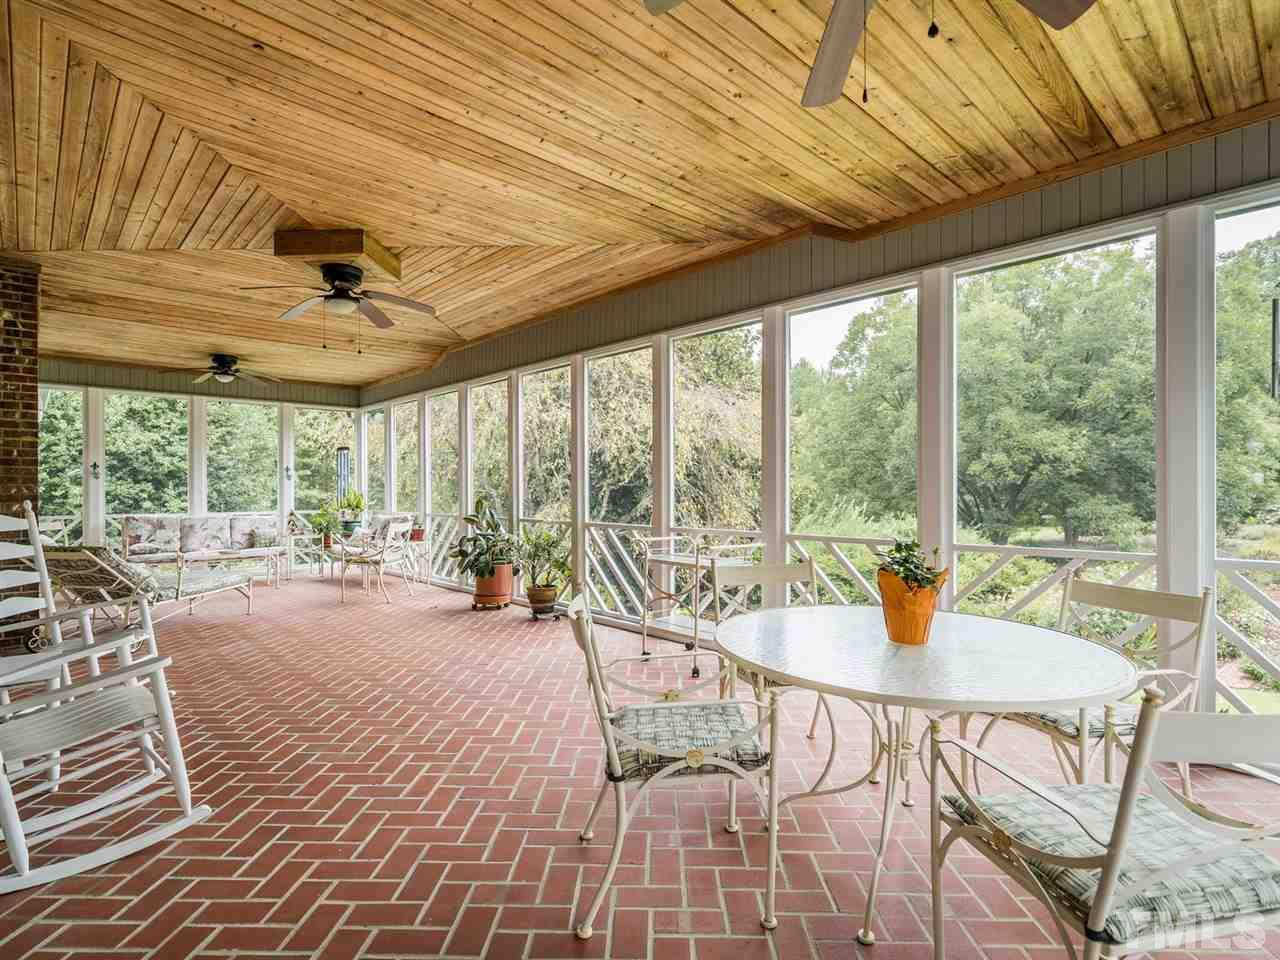 This screen porch can be enjoyed many months of the year with our favorable North Carolina climate.